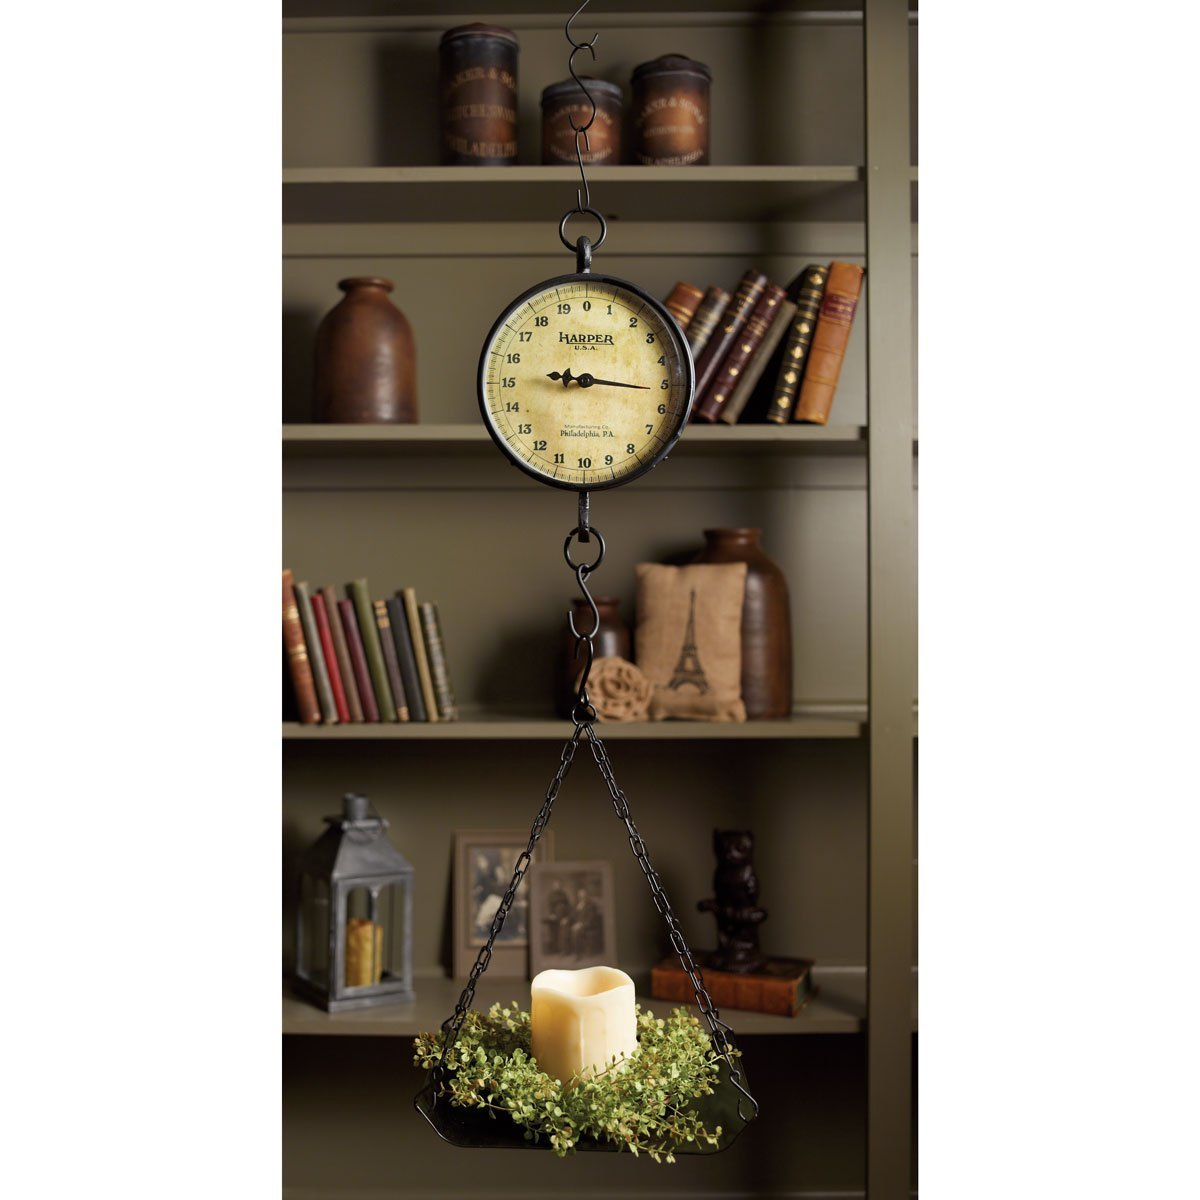 Farmhouse Decorating Style with a Hanging Scale